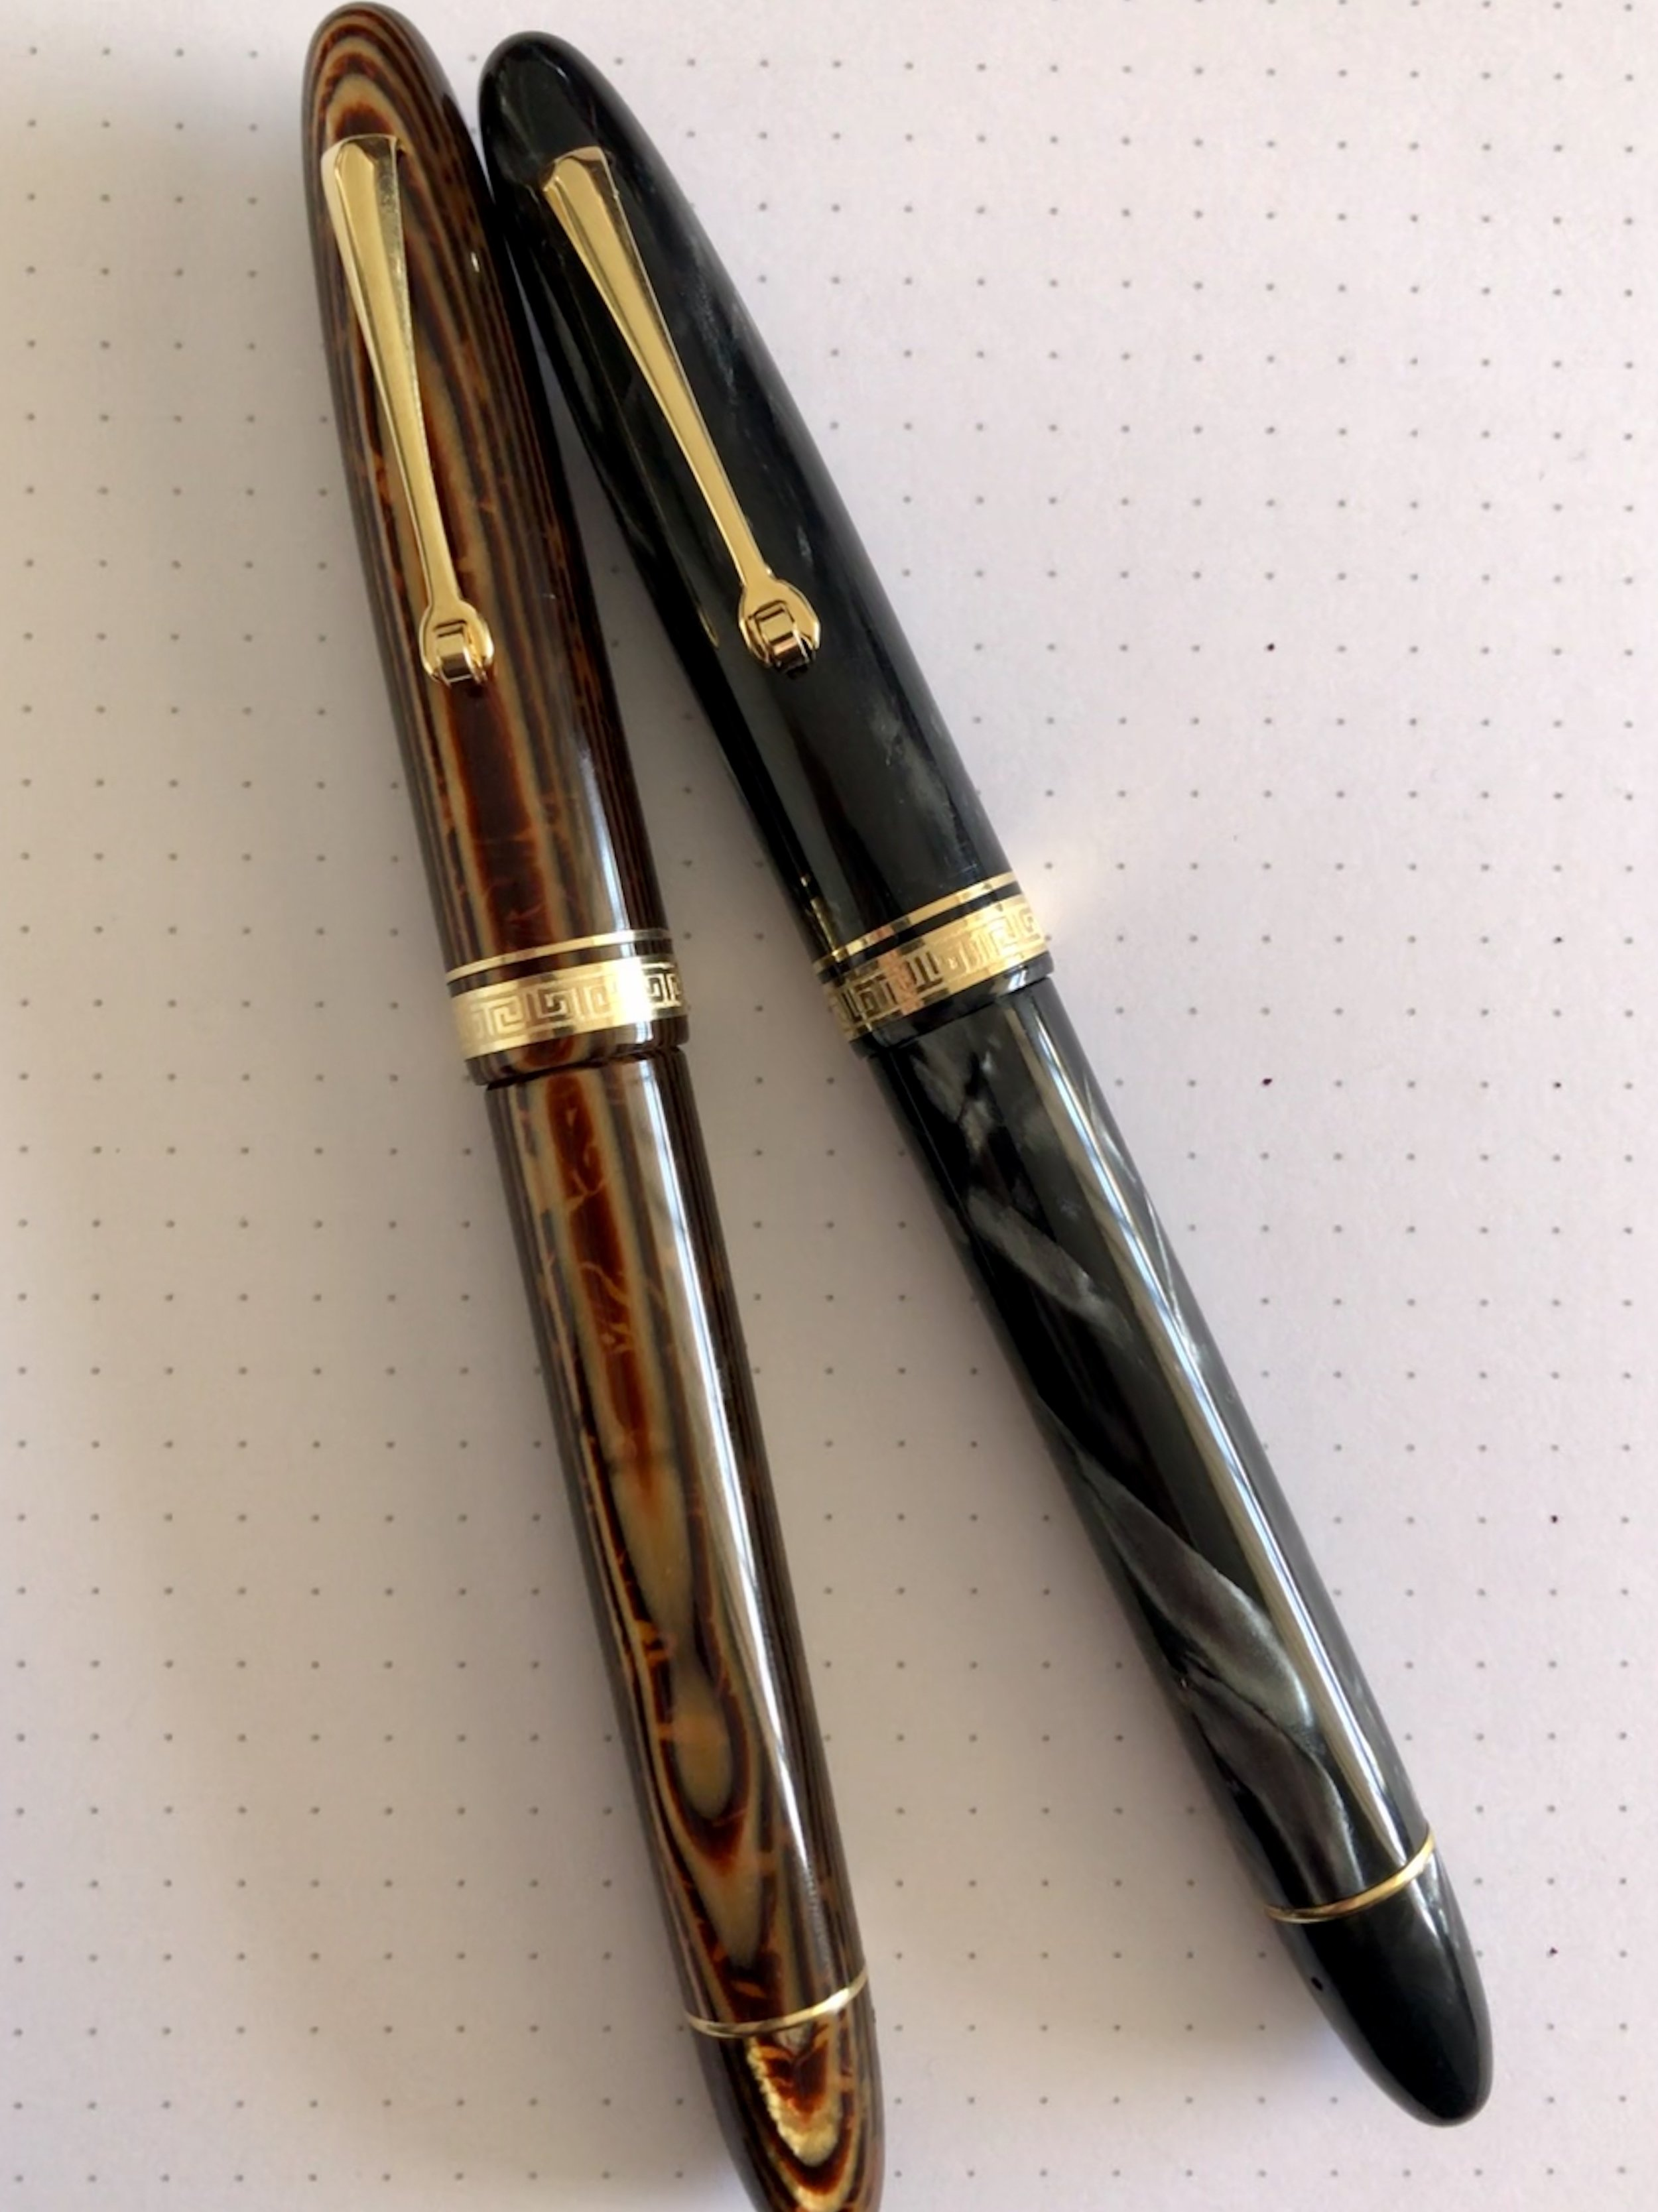 Vintage Omas Ogiva Arco and Pearl Grey.